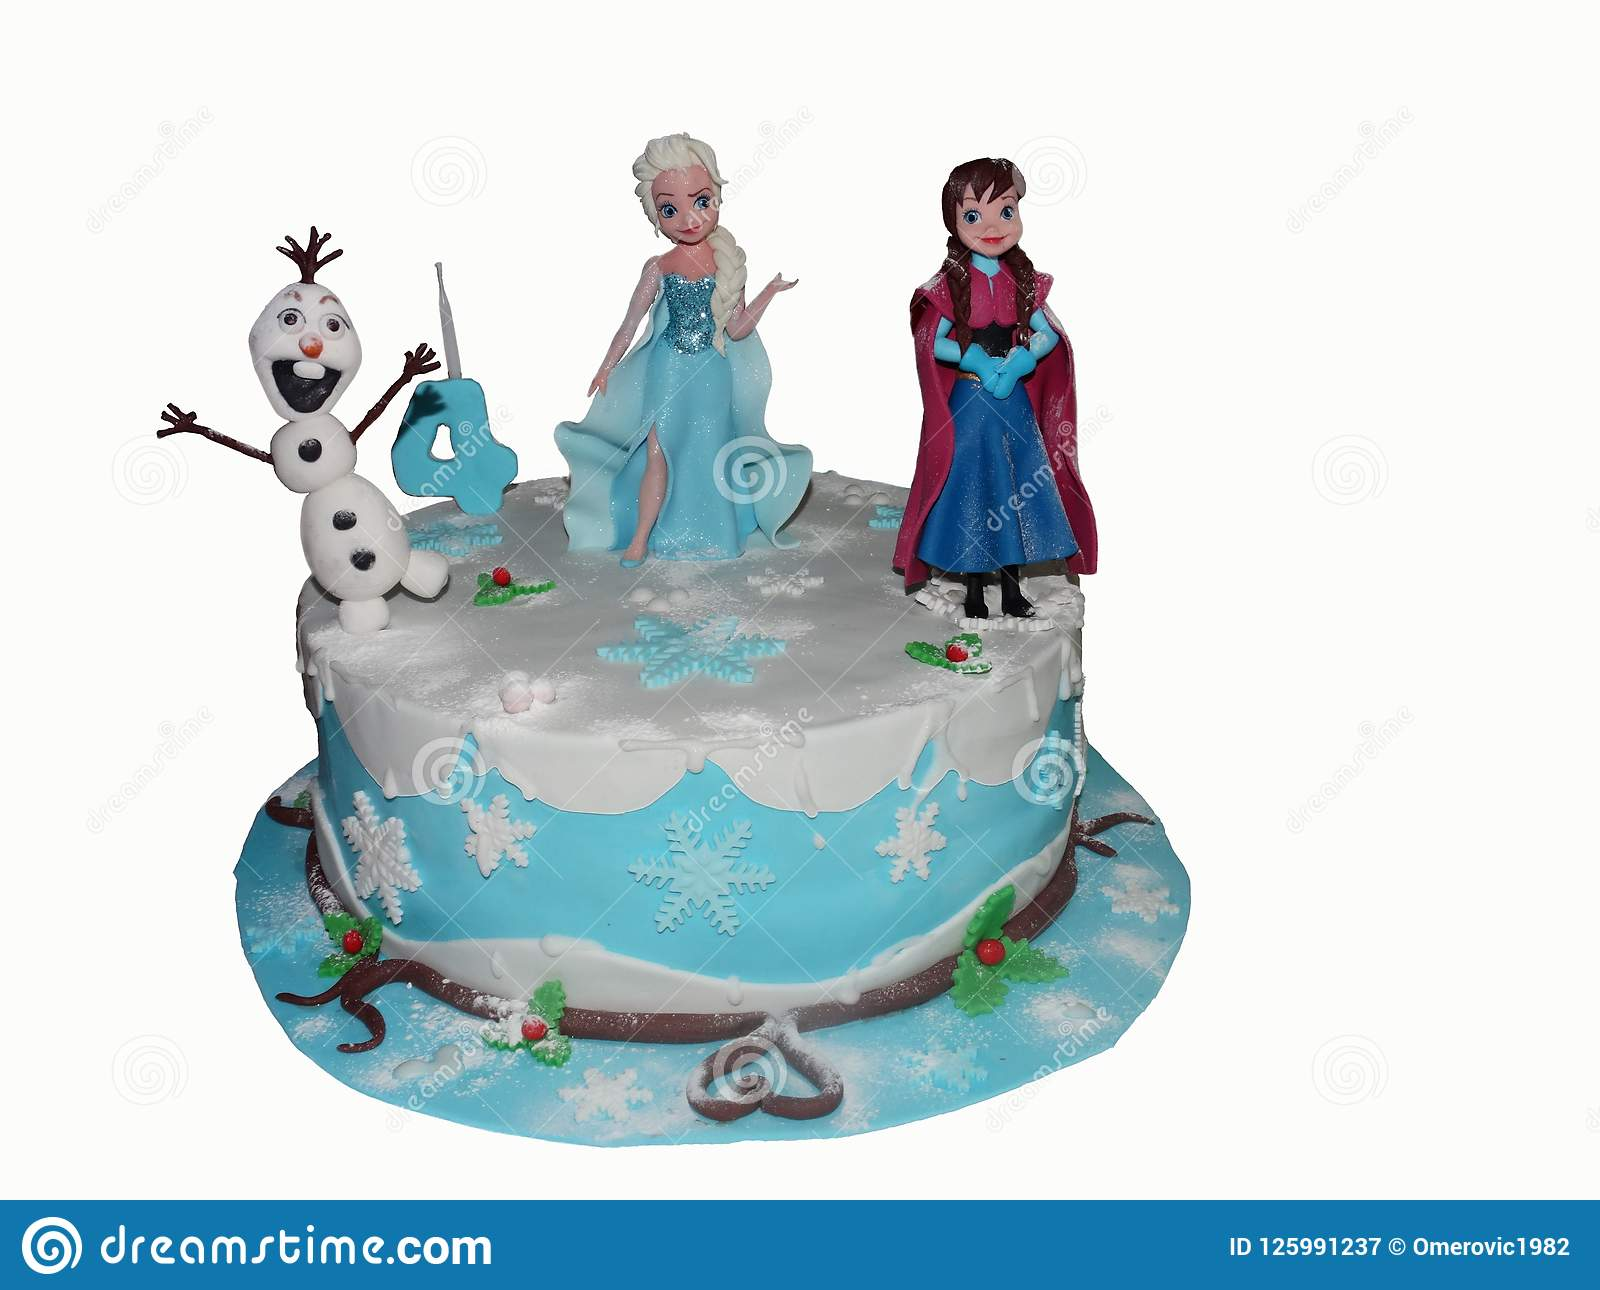 A Birthday Cake For The Fourth BirthdayOn Is Located Cartoon Characters AnnaElsa And Olaf